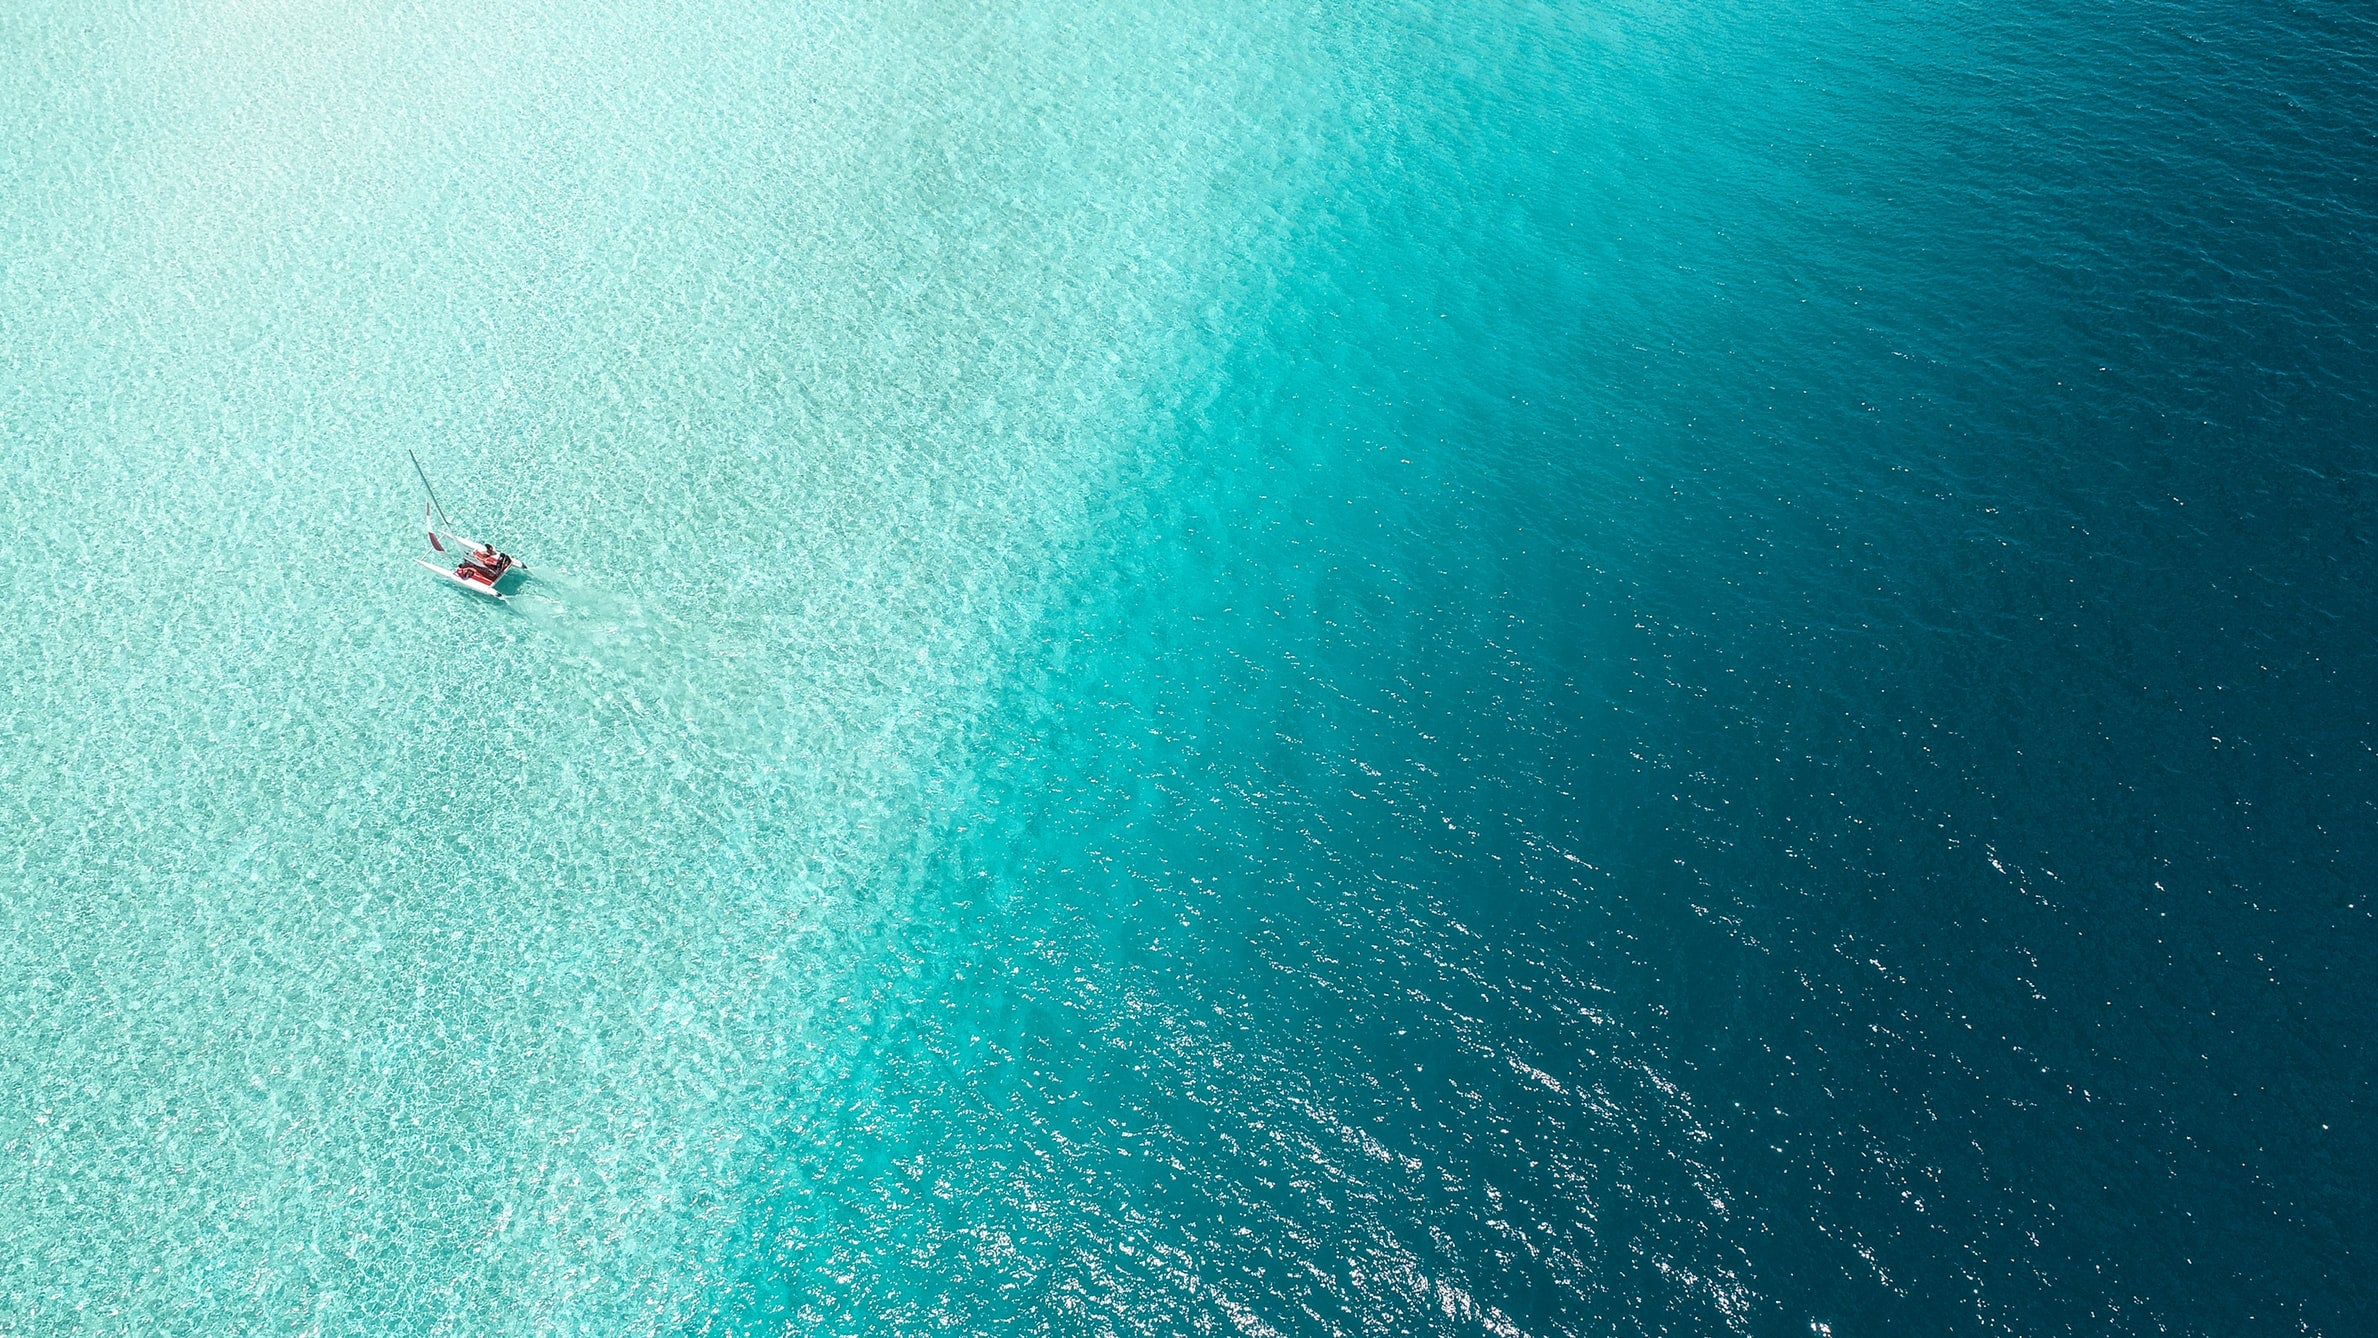 A boat in the blue ocean